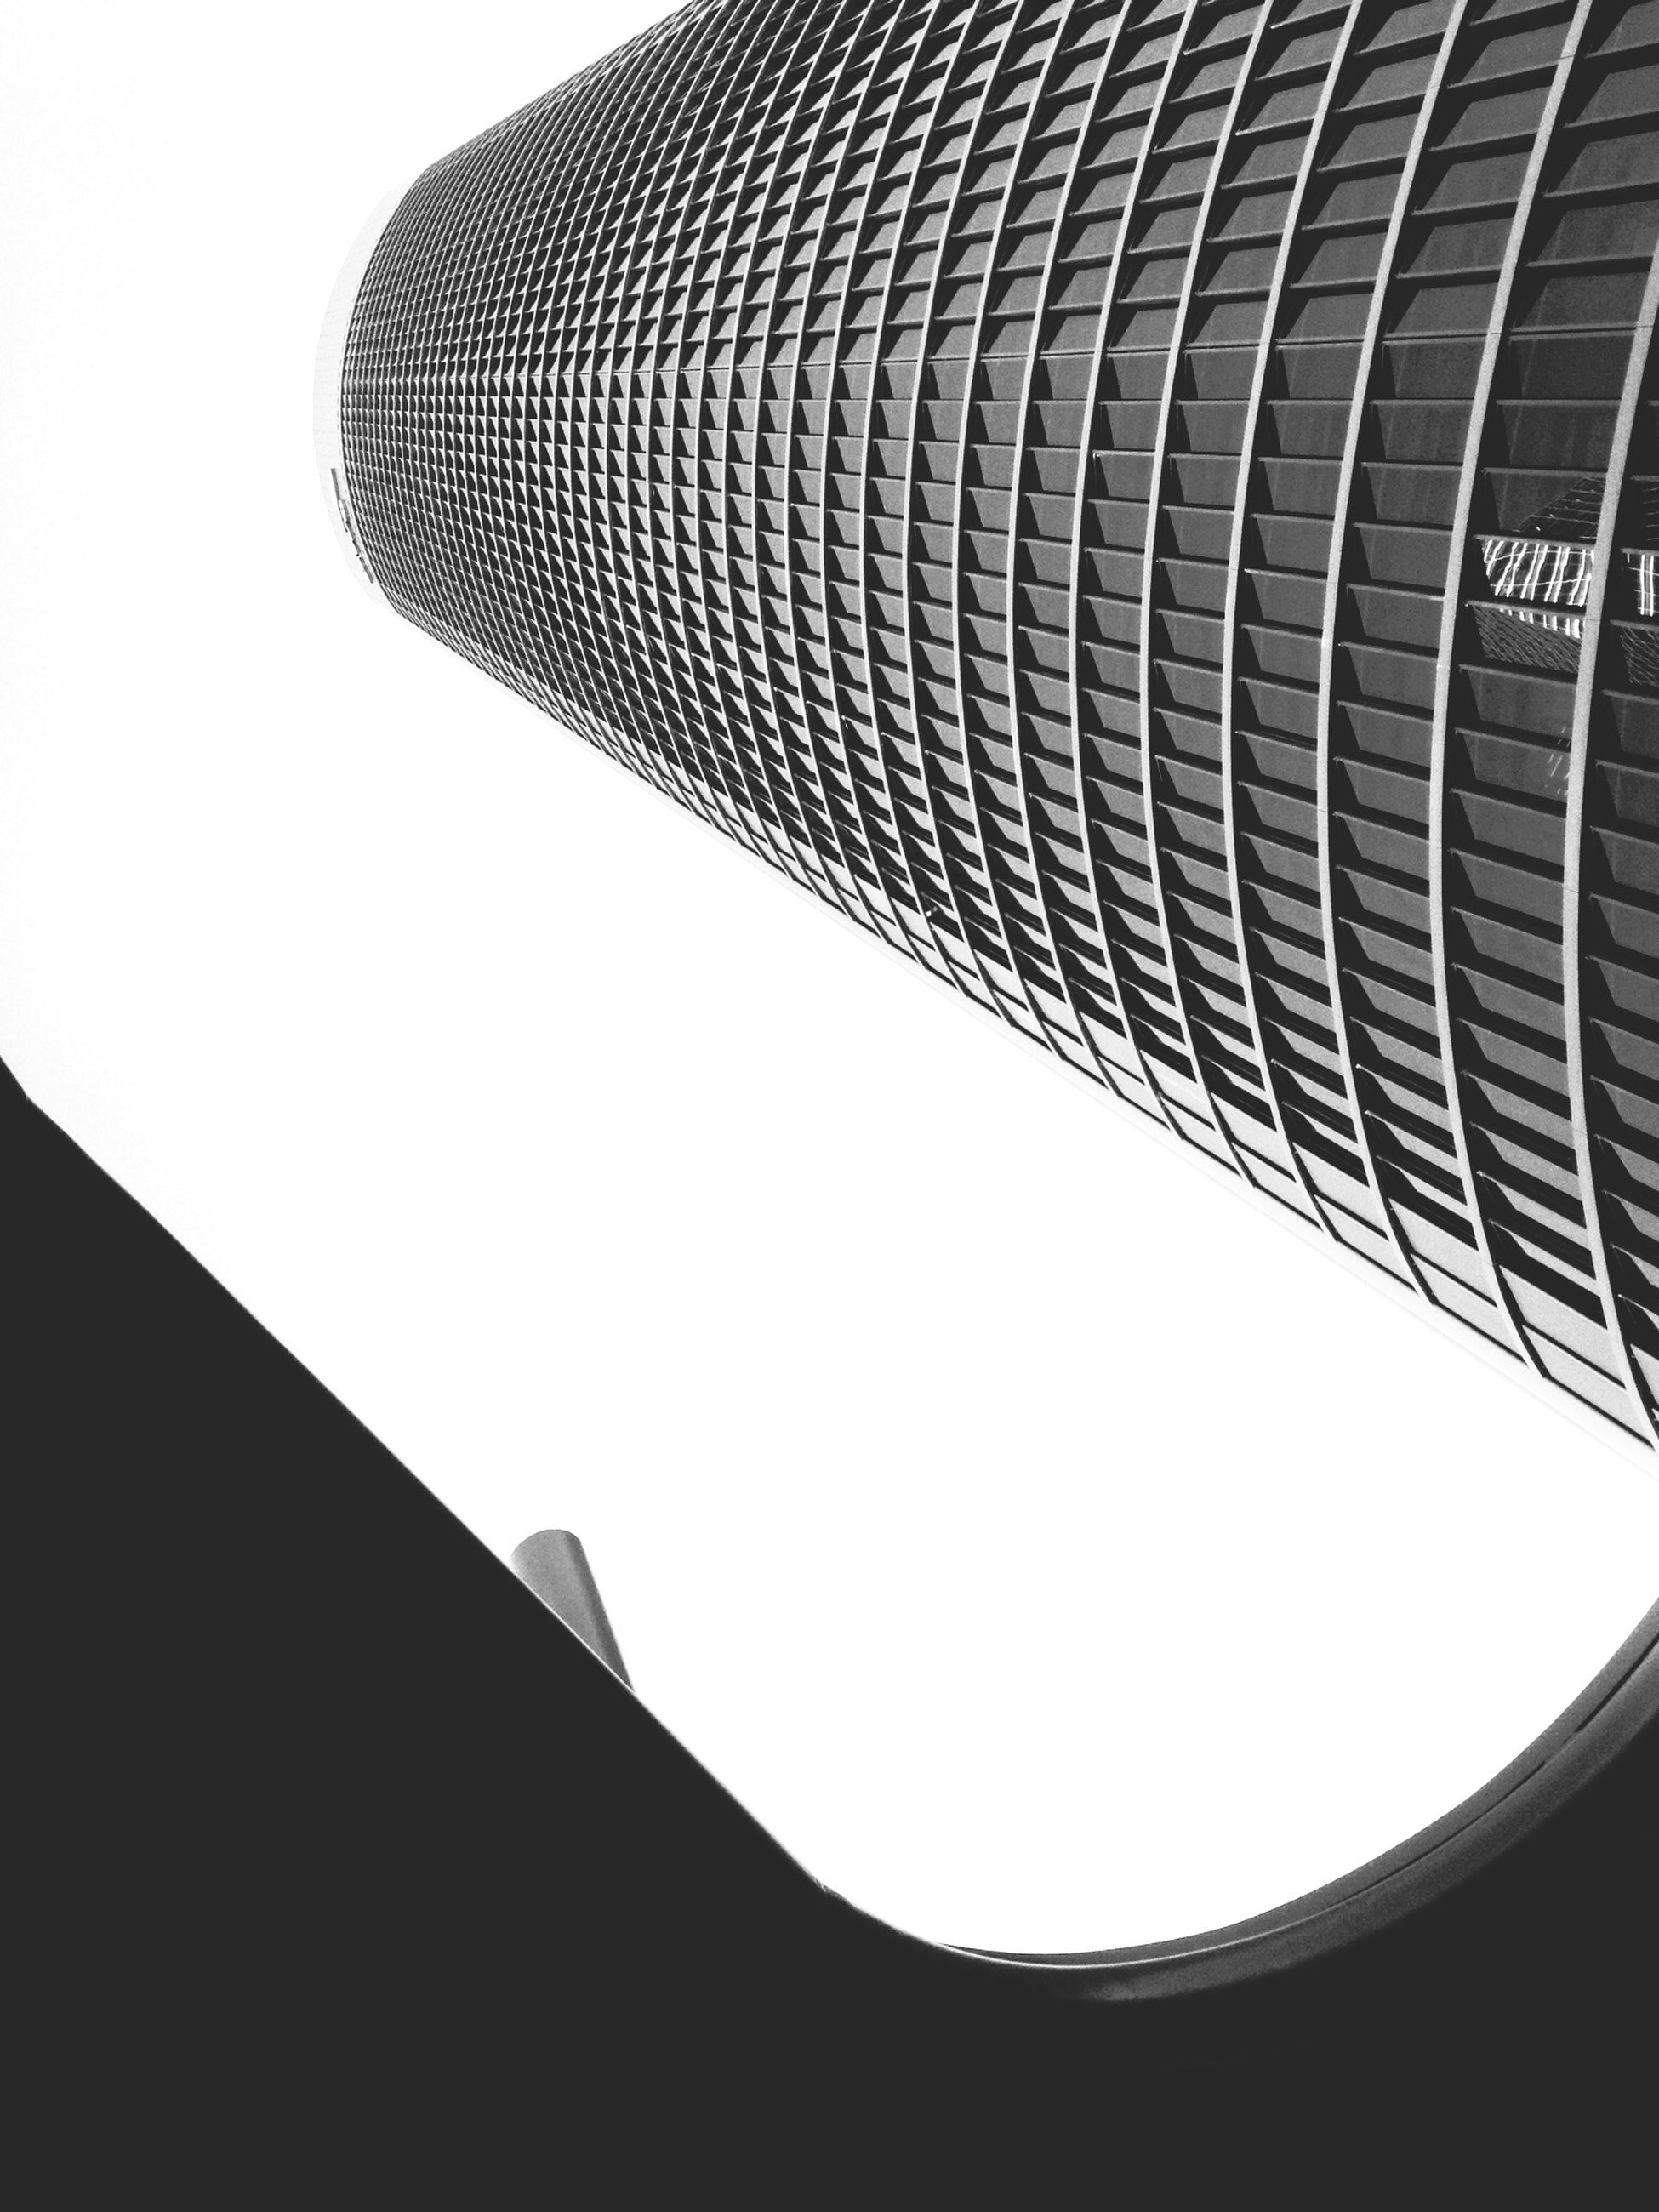 architecture, low angle view, built structure, building exterior, modern, clear sky, tower, tall - high, city, skyscraper, building, office building, sky, no people, day, copy space, outdoors, directly below, pattern, architectural feature